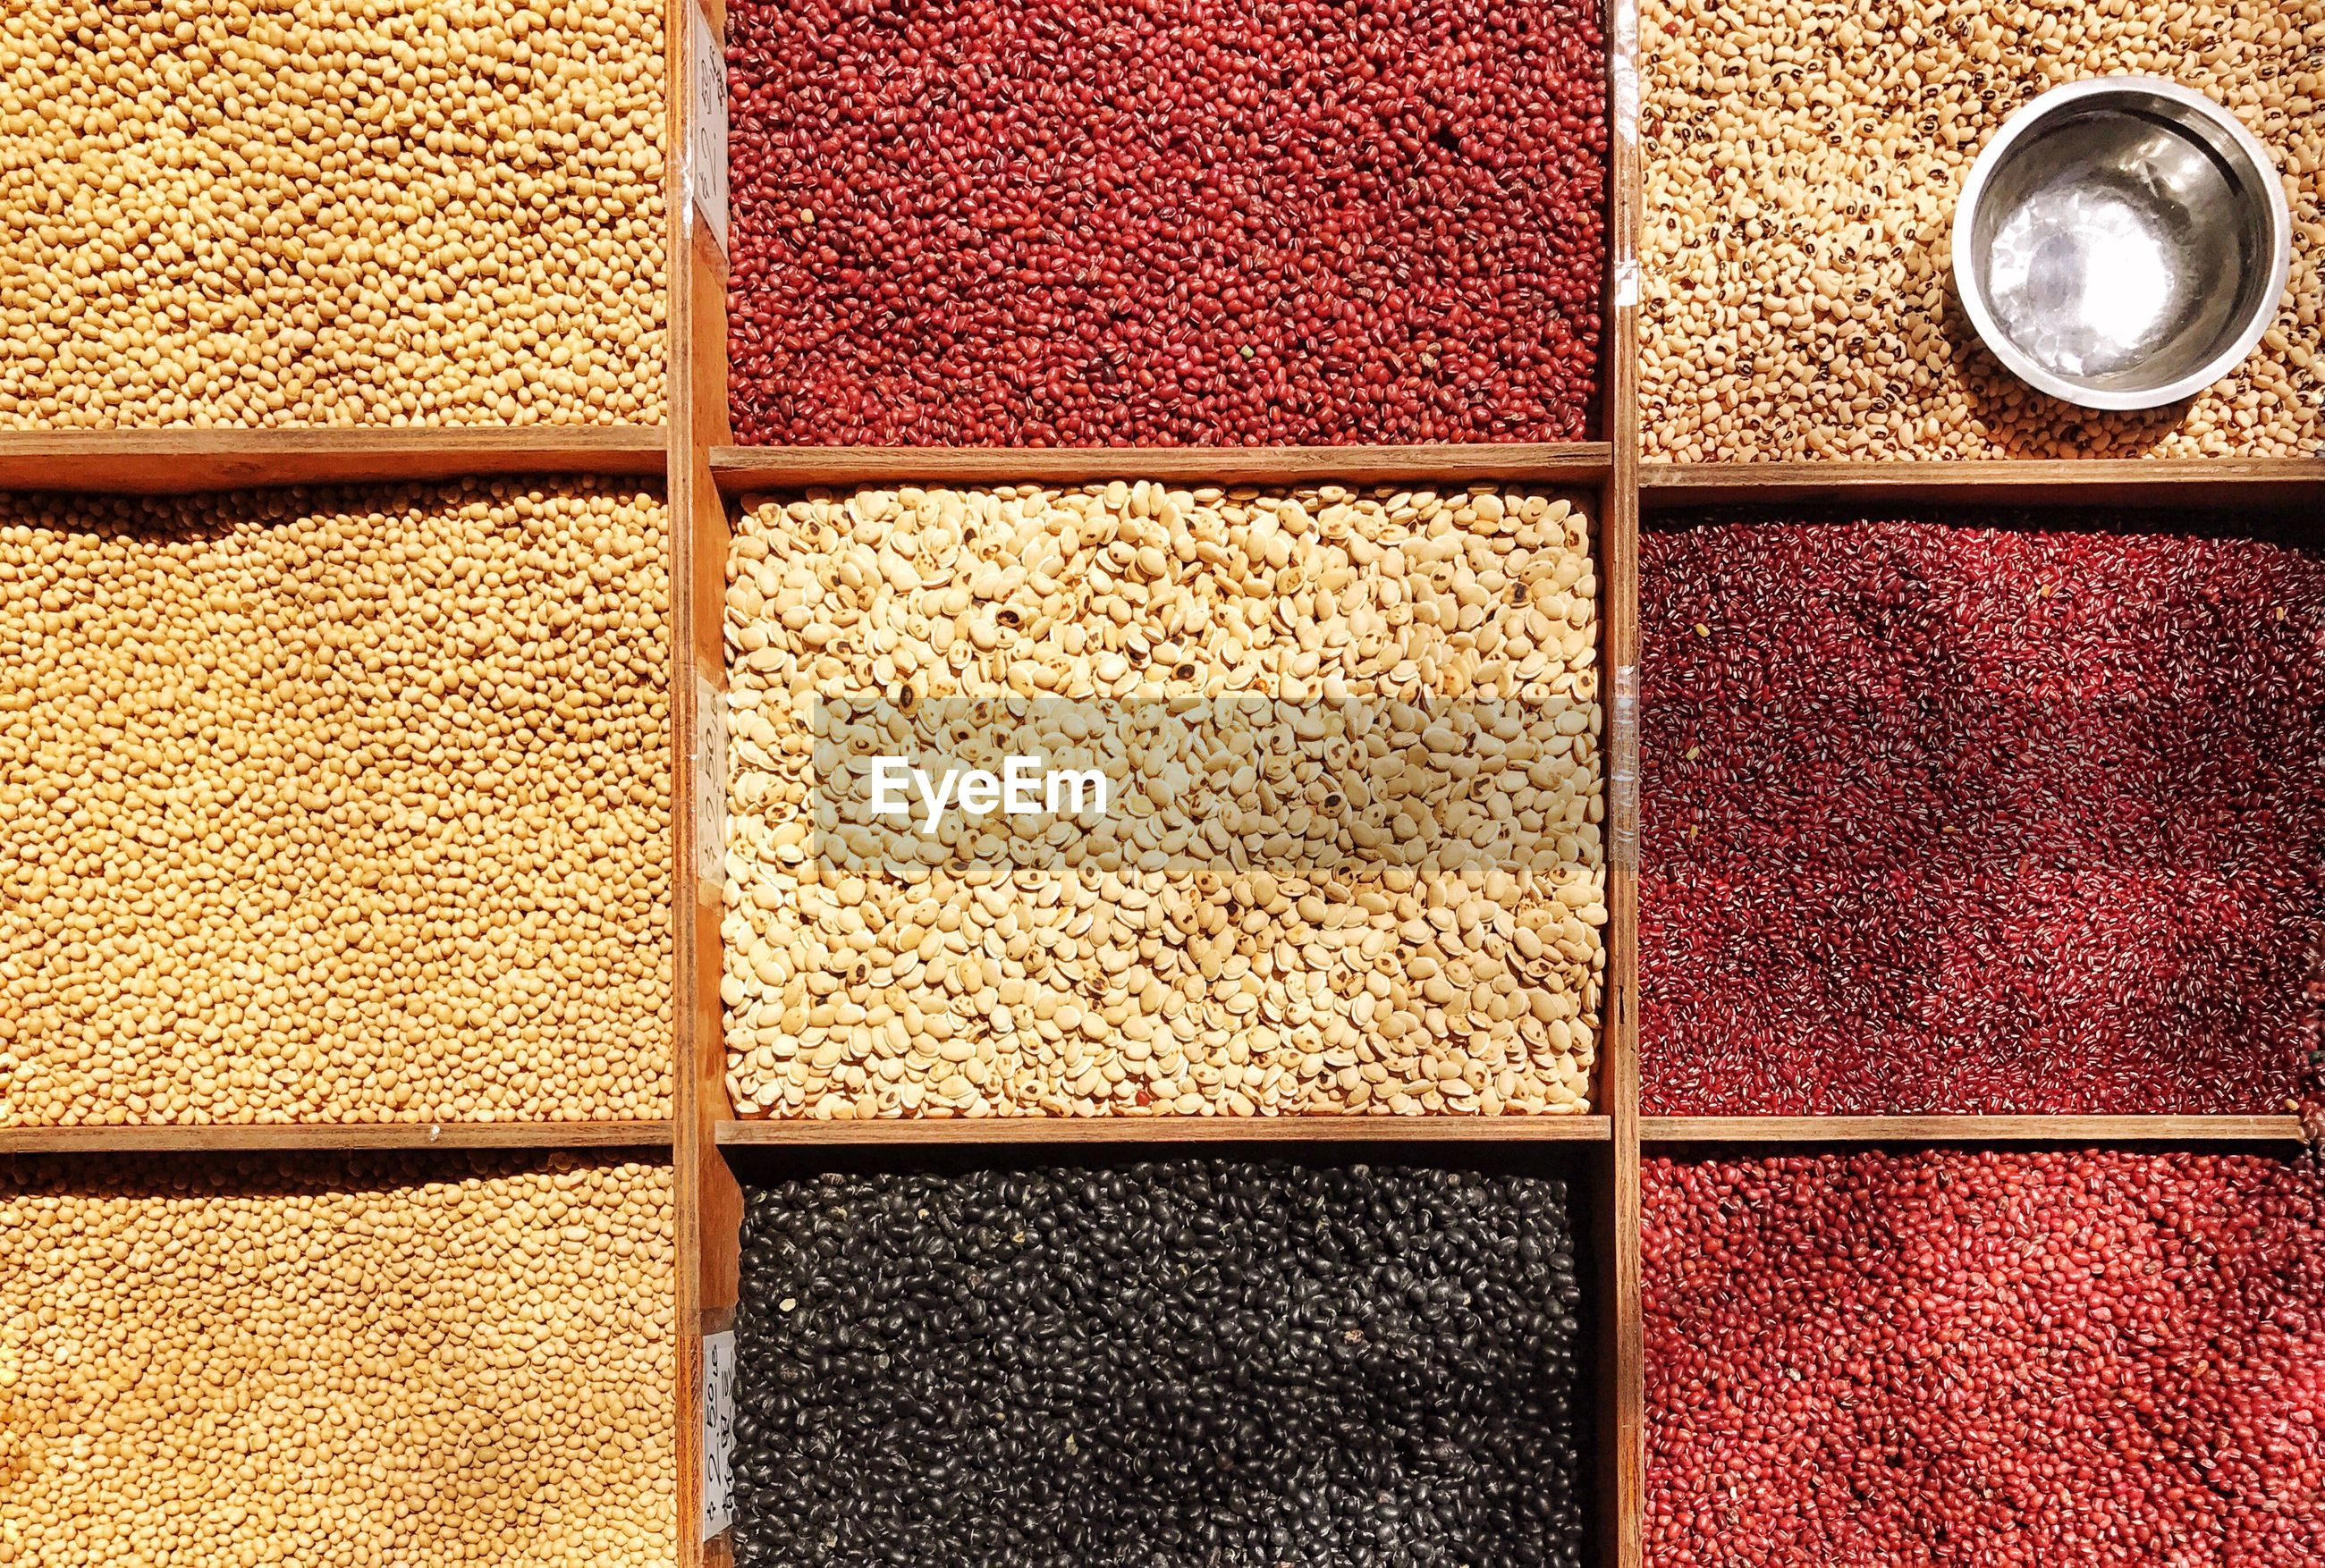 Directly above shot of various grains for sale at market